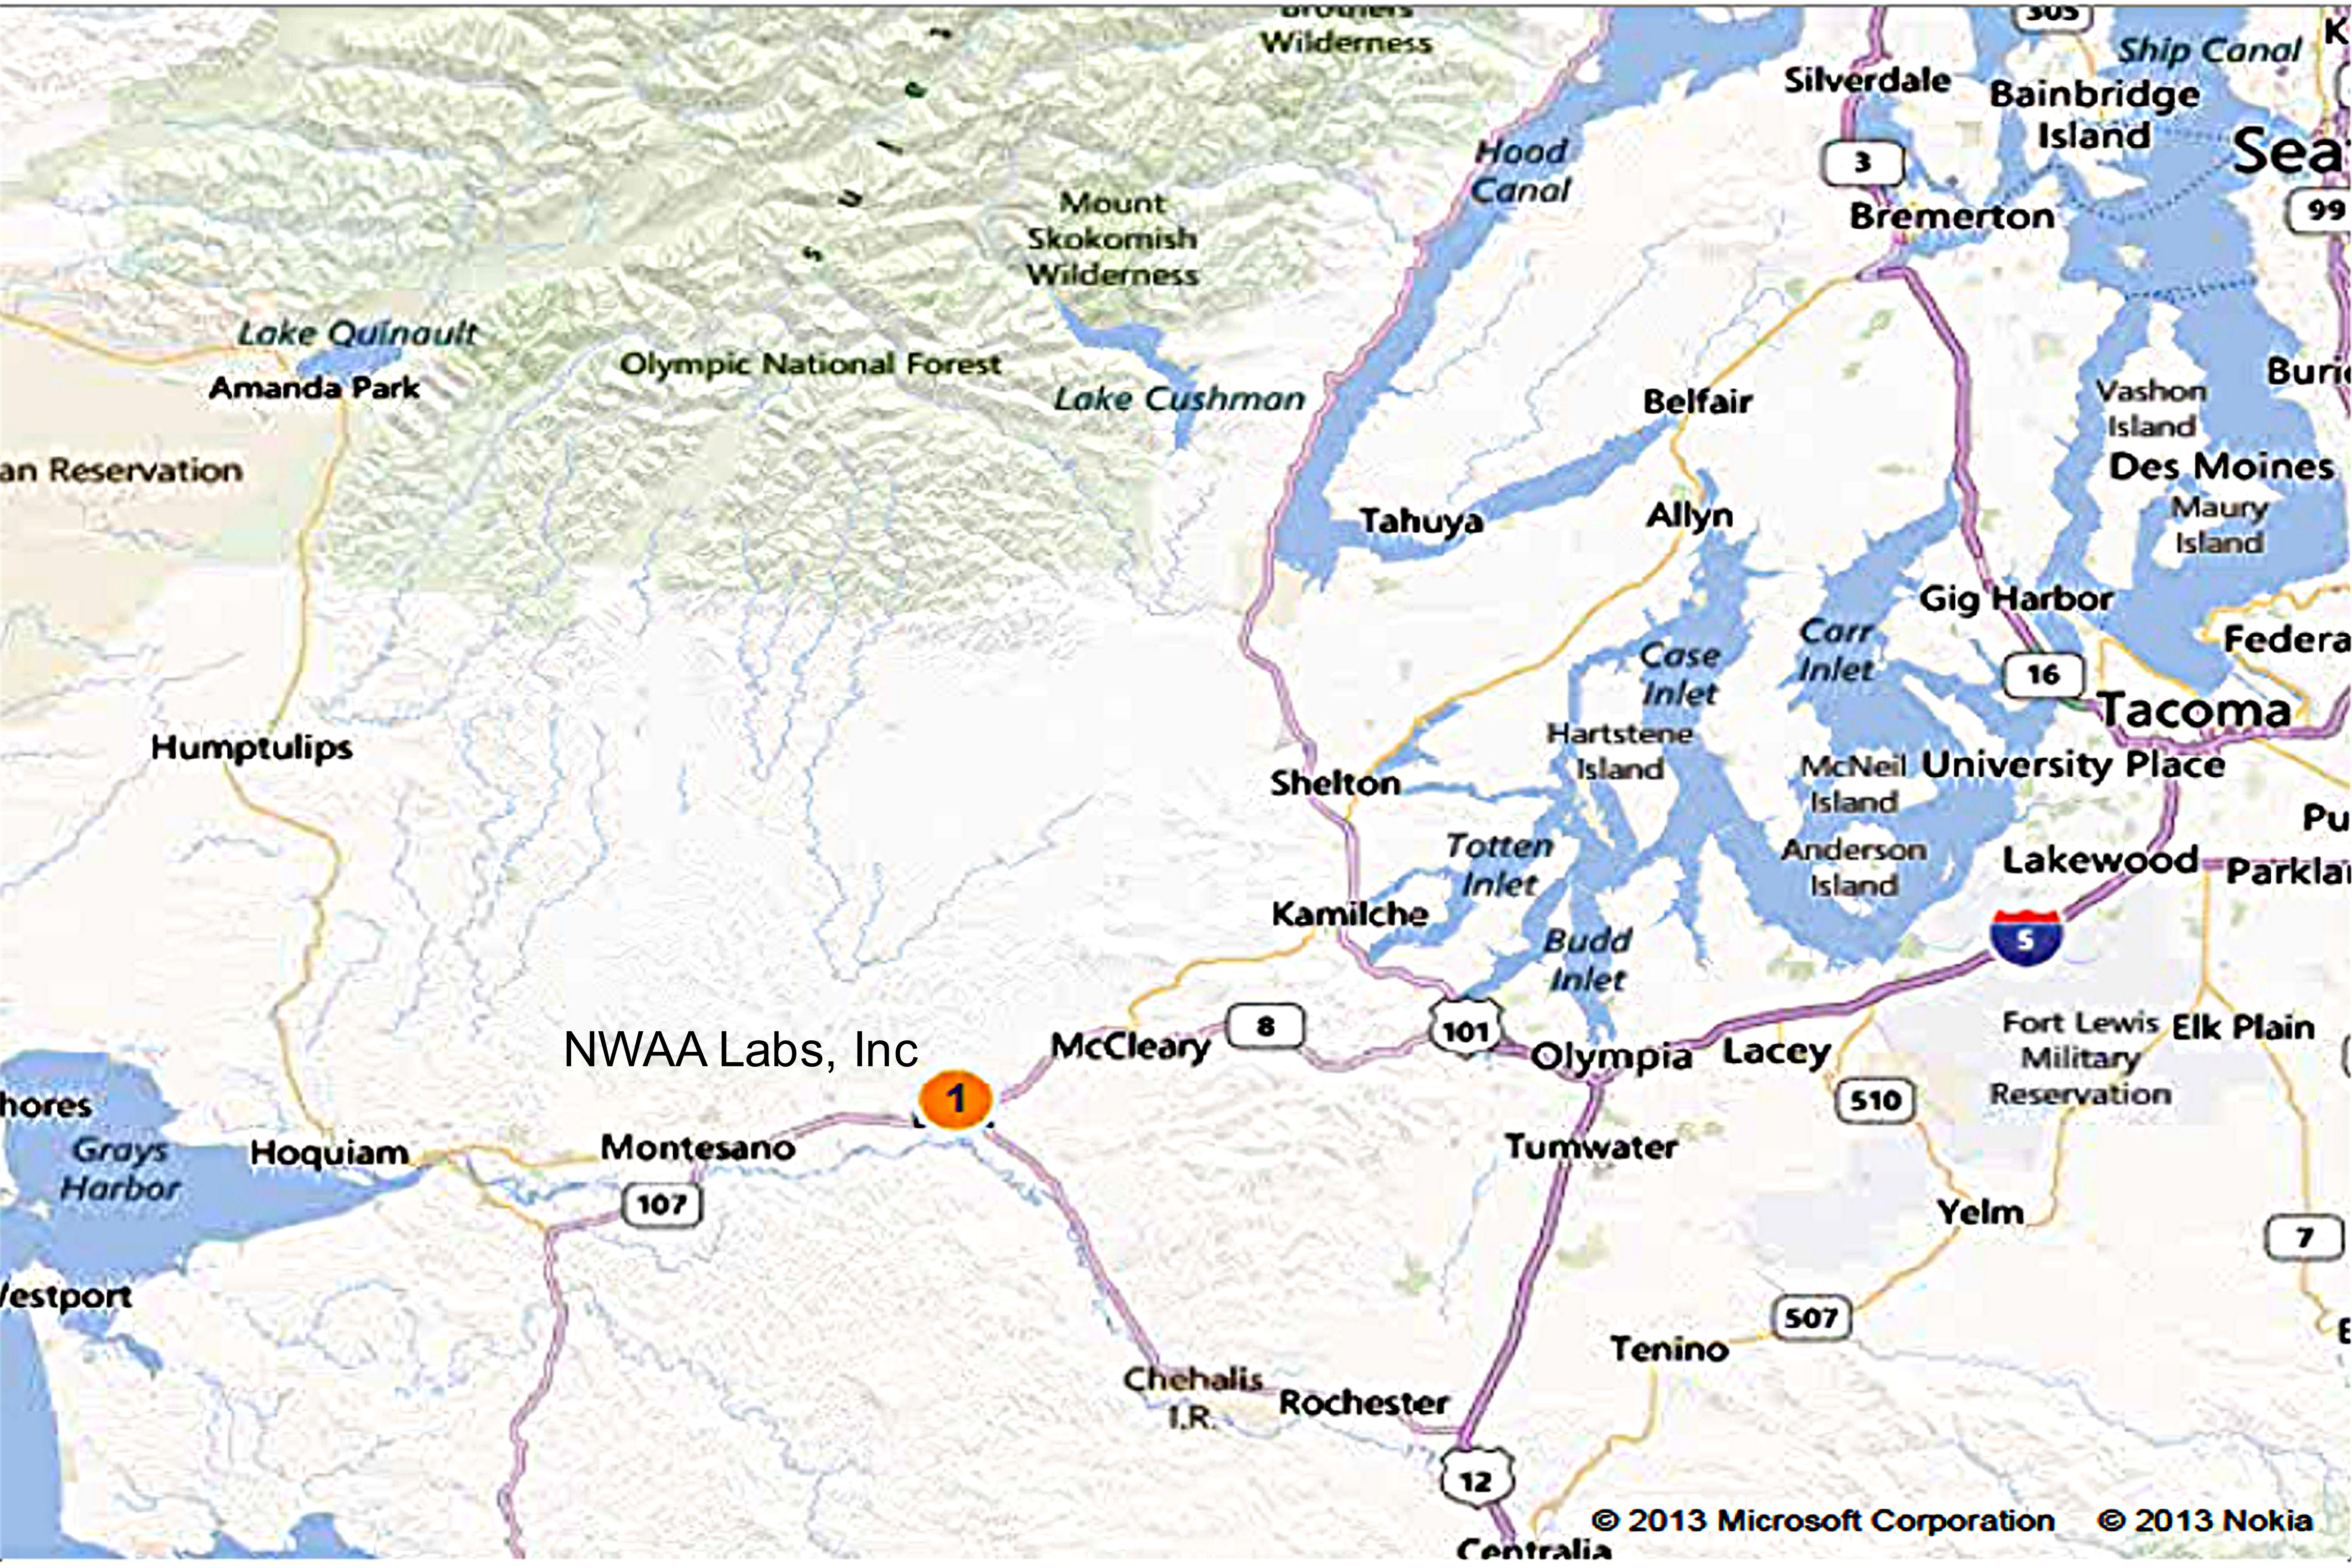 Location Map of NWAA Labs, Inc